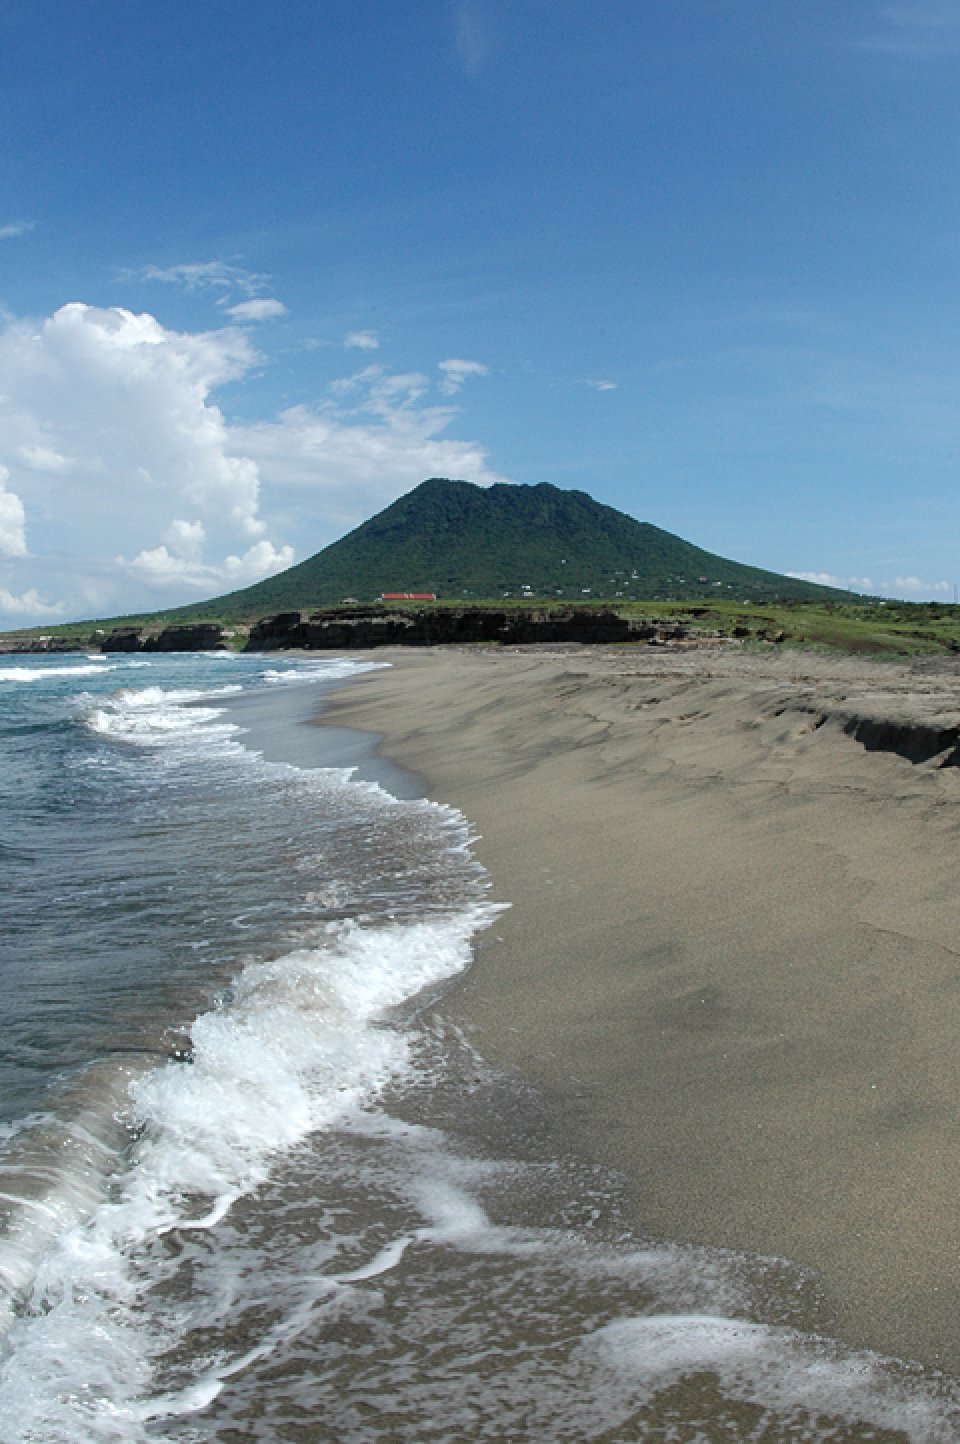 Zeelandia Beach and the Quill volcanic cone